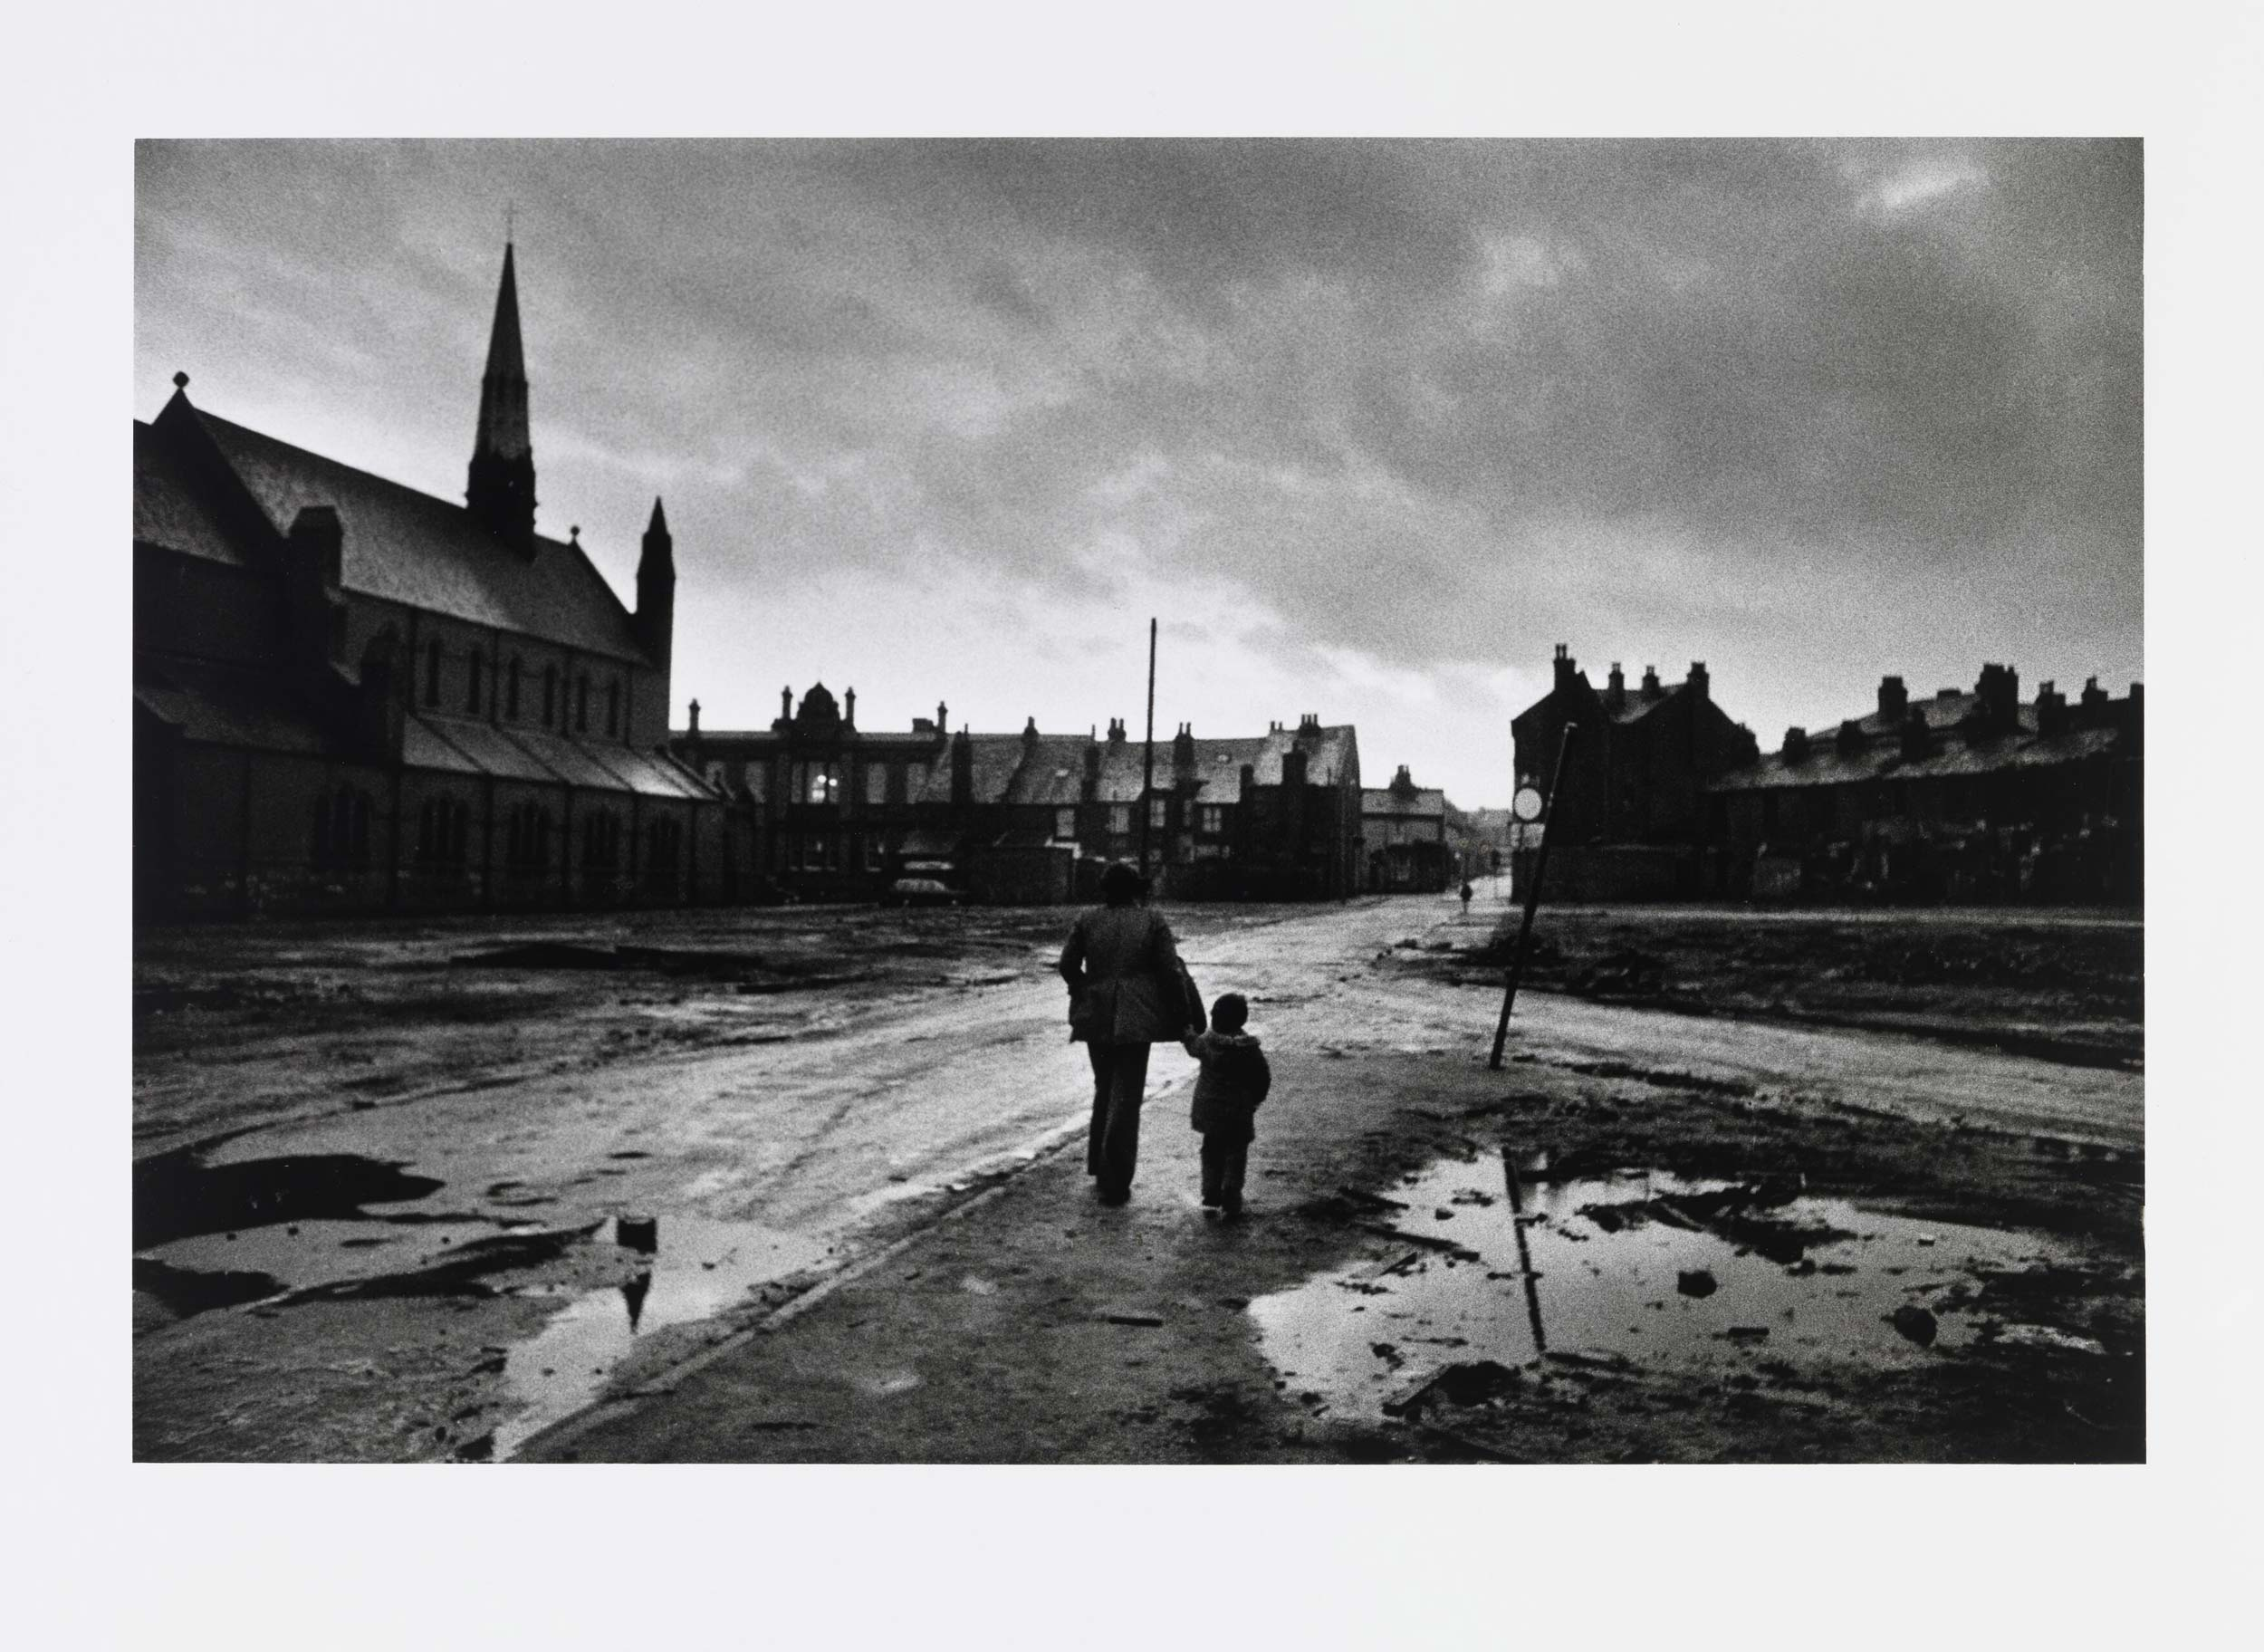 Don McCullin spent 60 years capturing bloodshed and desperation—now he finds solace in the countryside